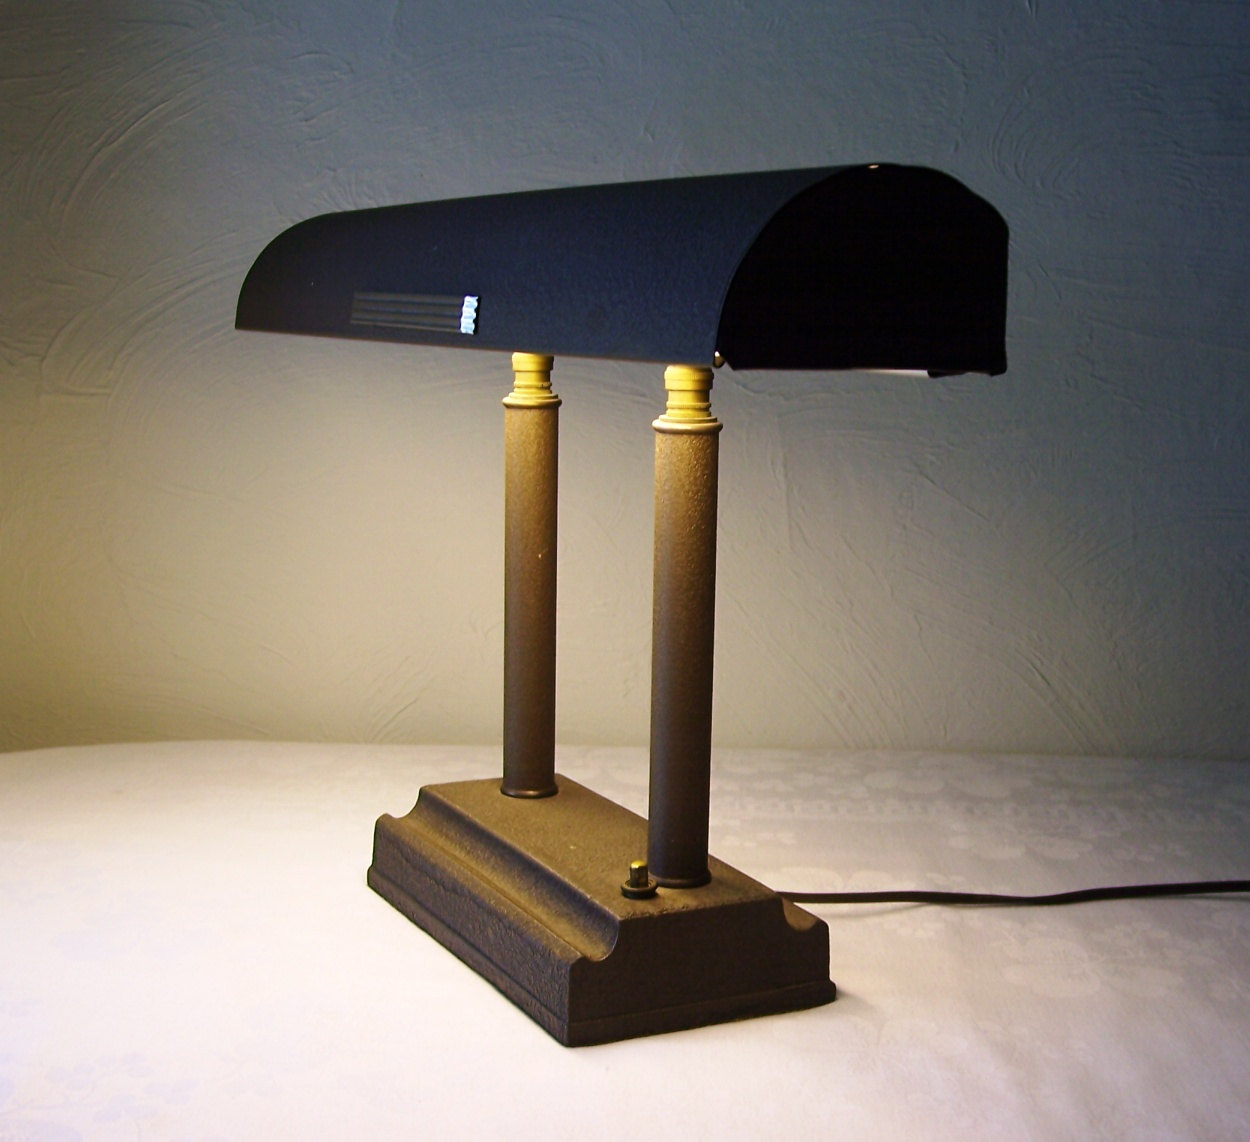 Art deco desk lamp – 10 methods for lighting up a room that no other normal  lamp can - Art Deco Desk Lamp - 10 Methods For Lighting Up A Room That No